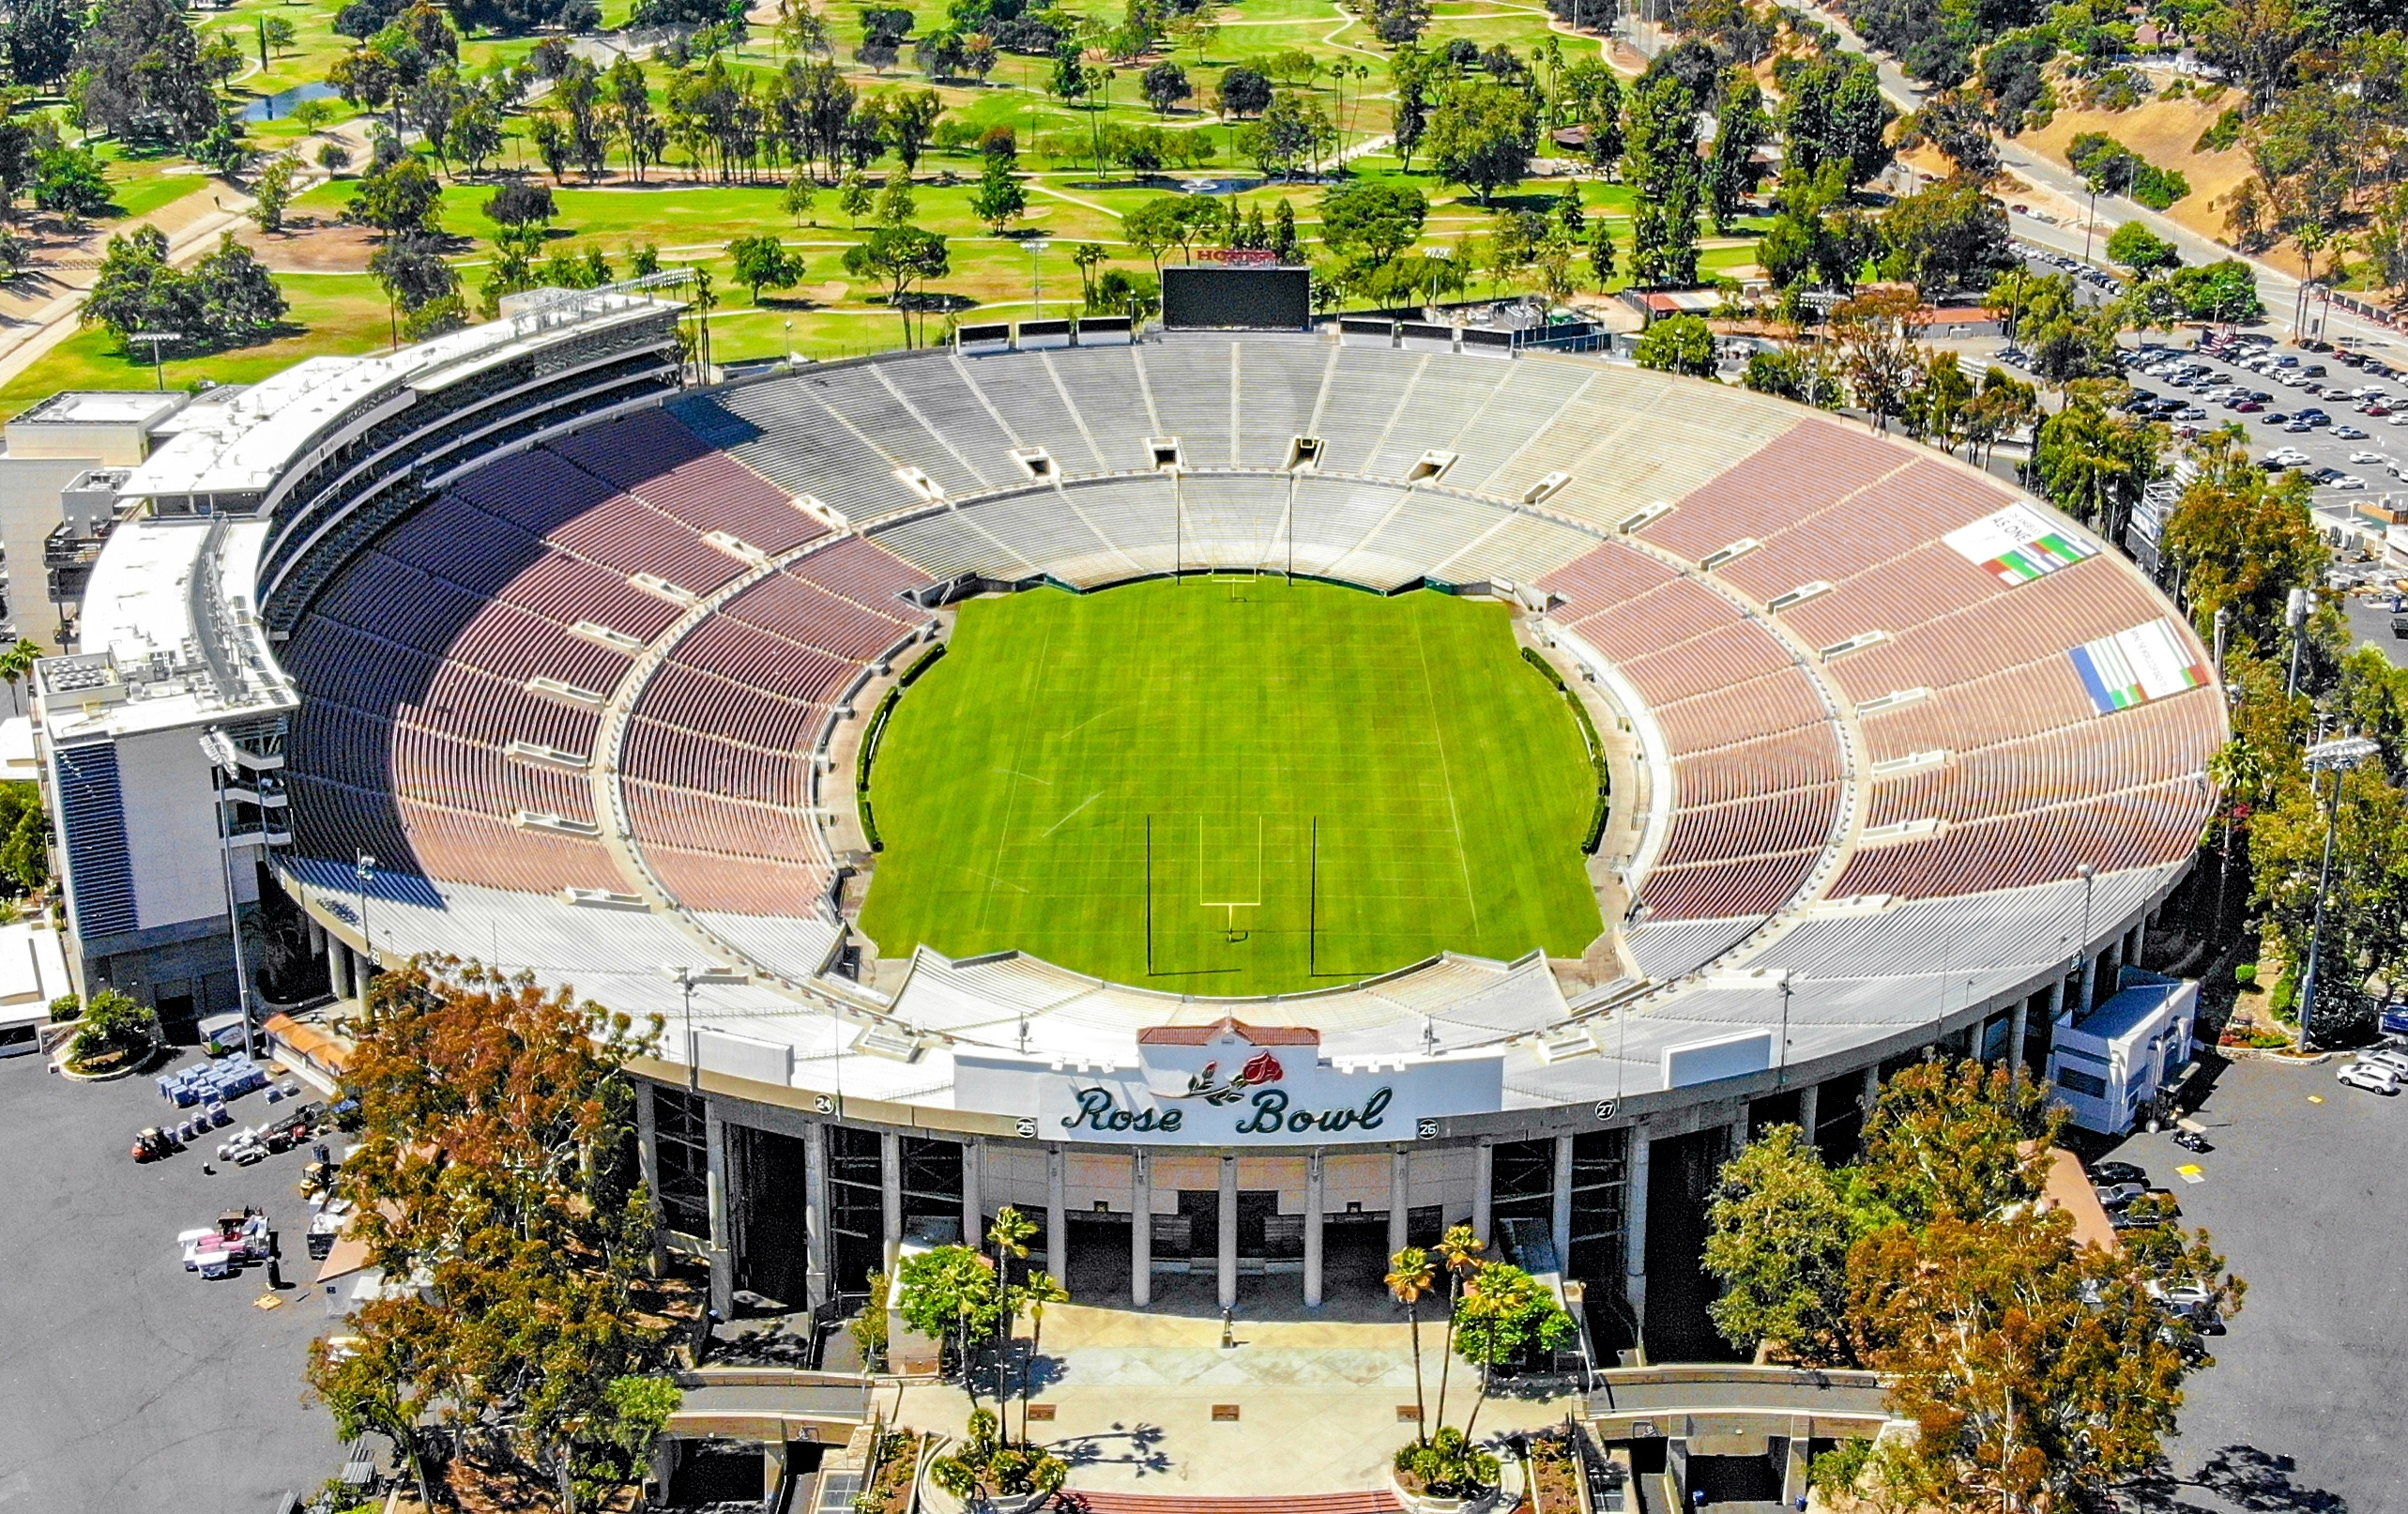 Rose Bowl (Stadium) - Wikipedia regarding Super Bowl Seating Capacity